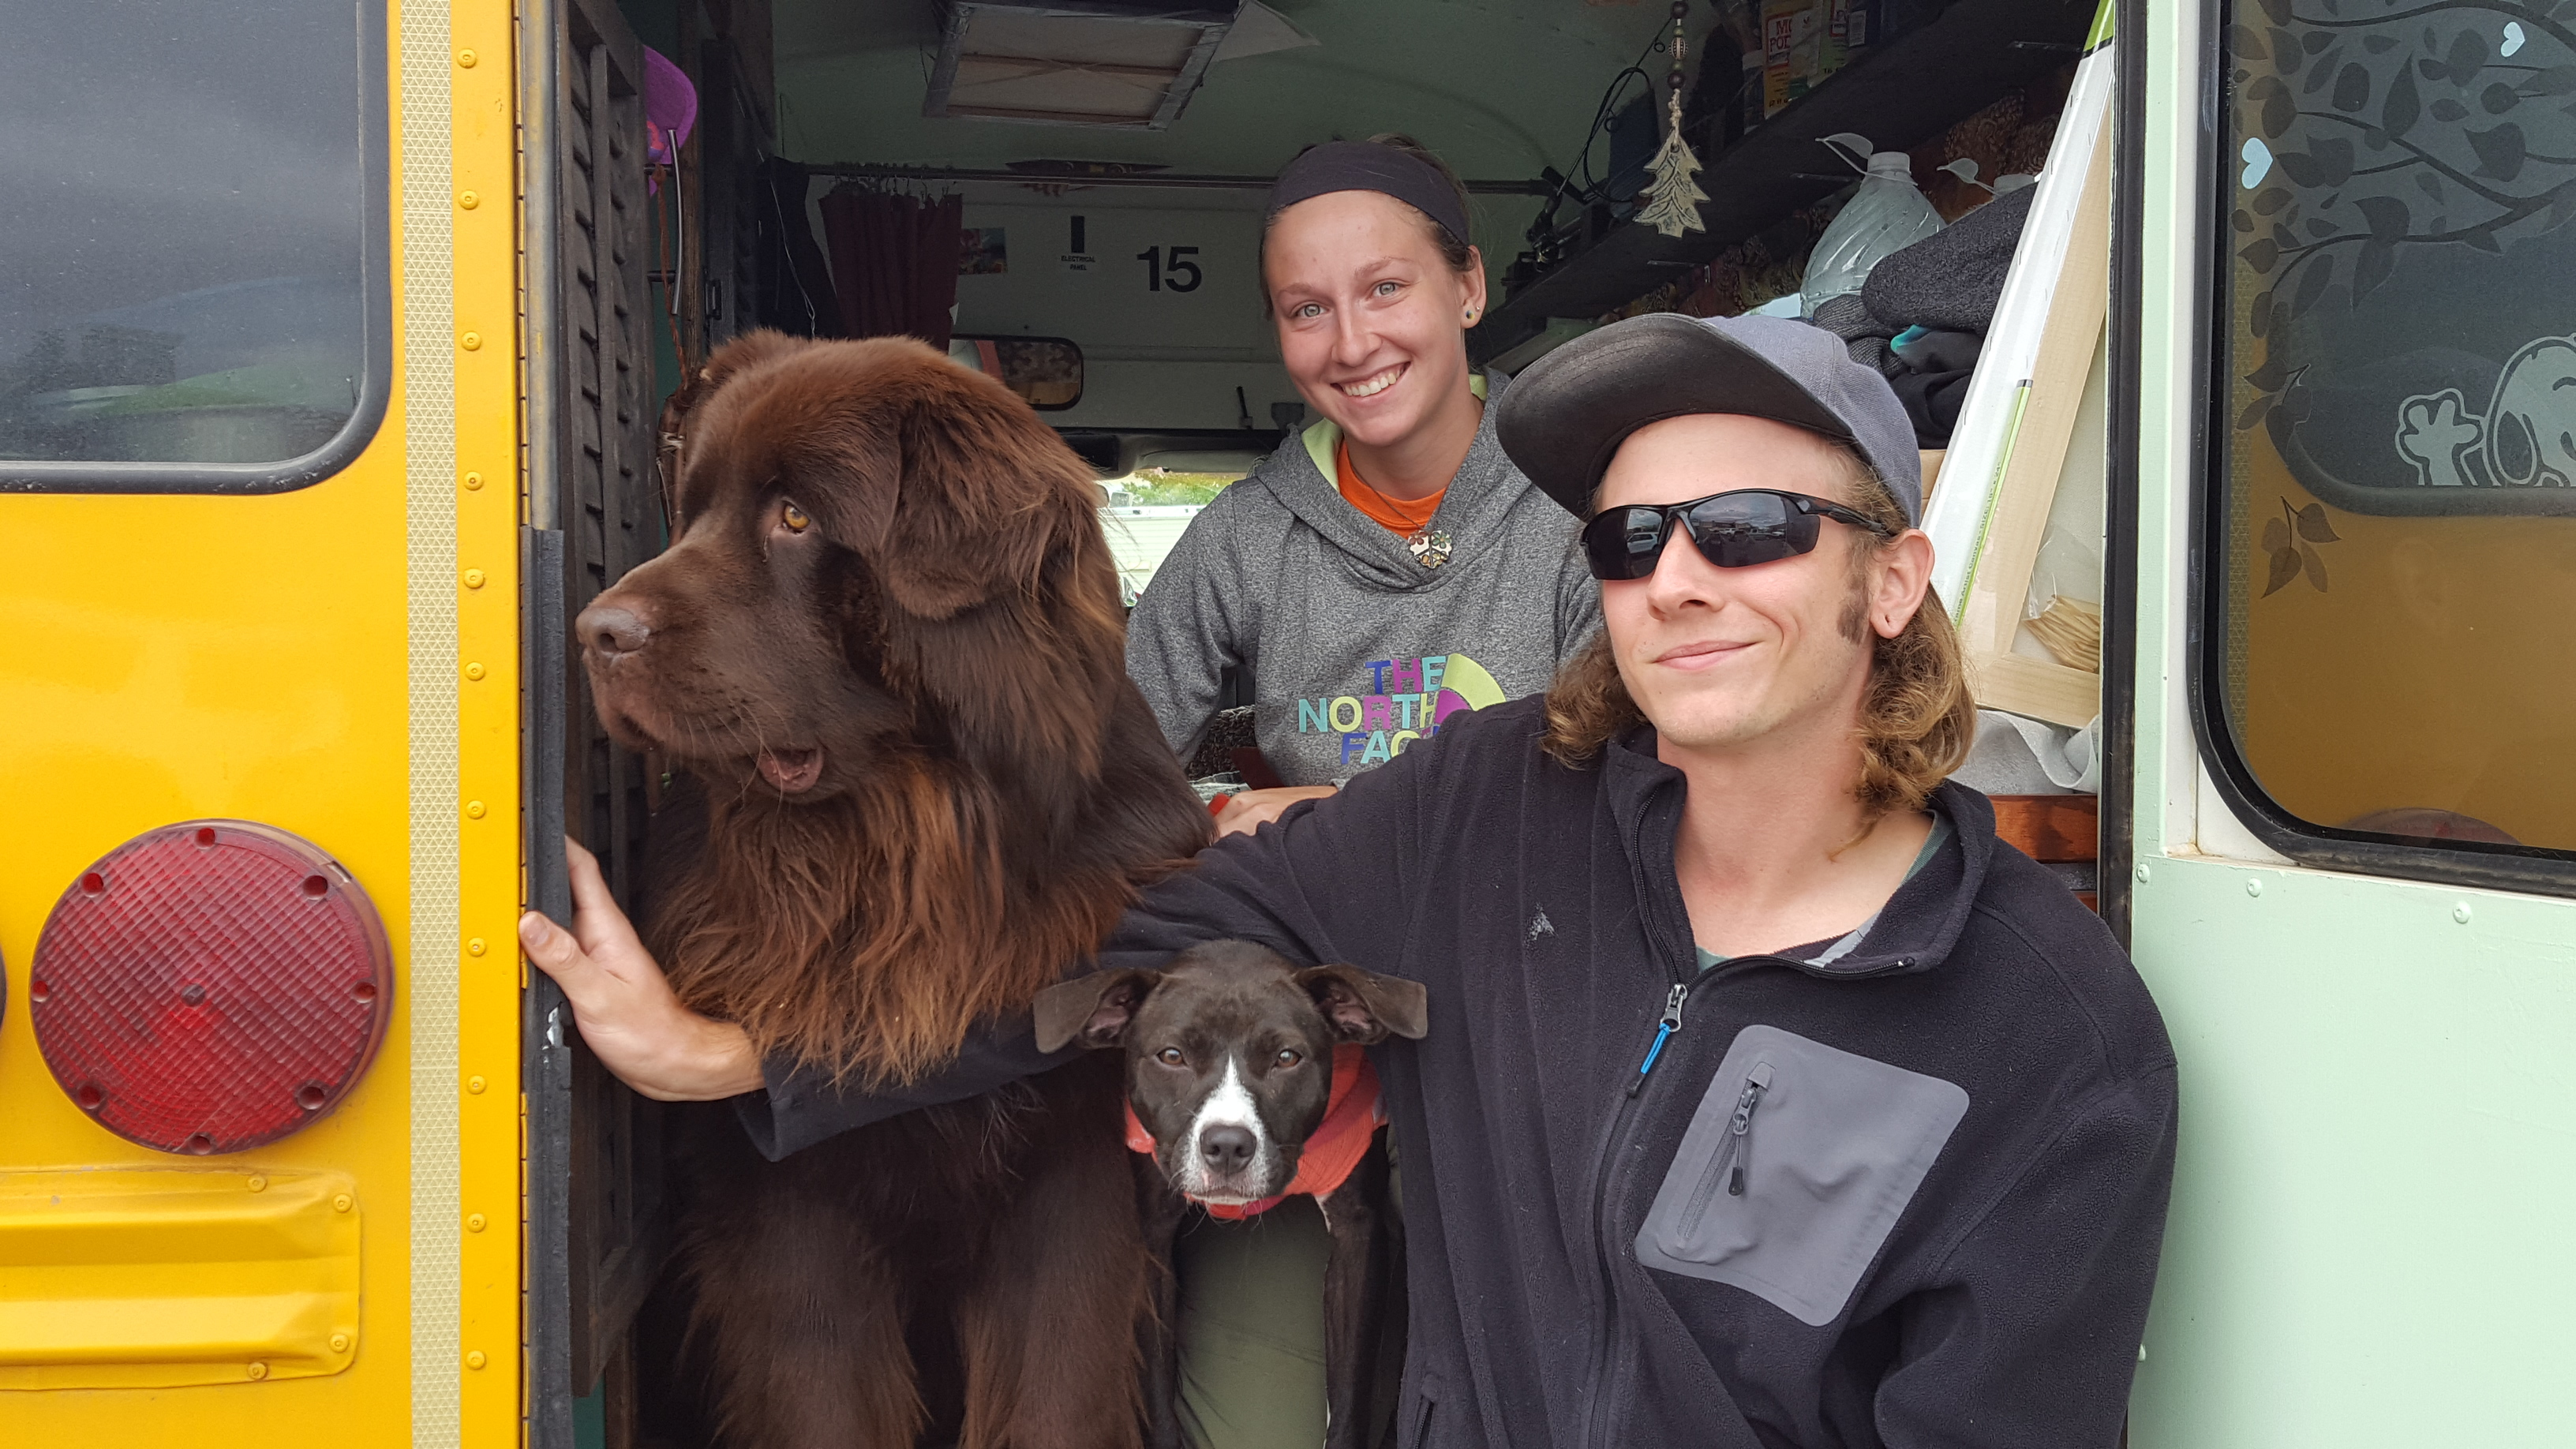 Van Life - School Bus Conversion Tour - Meet Van Dwellers Patrick & Sarah